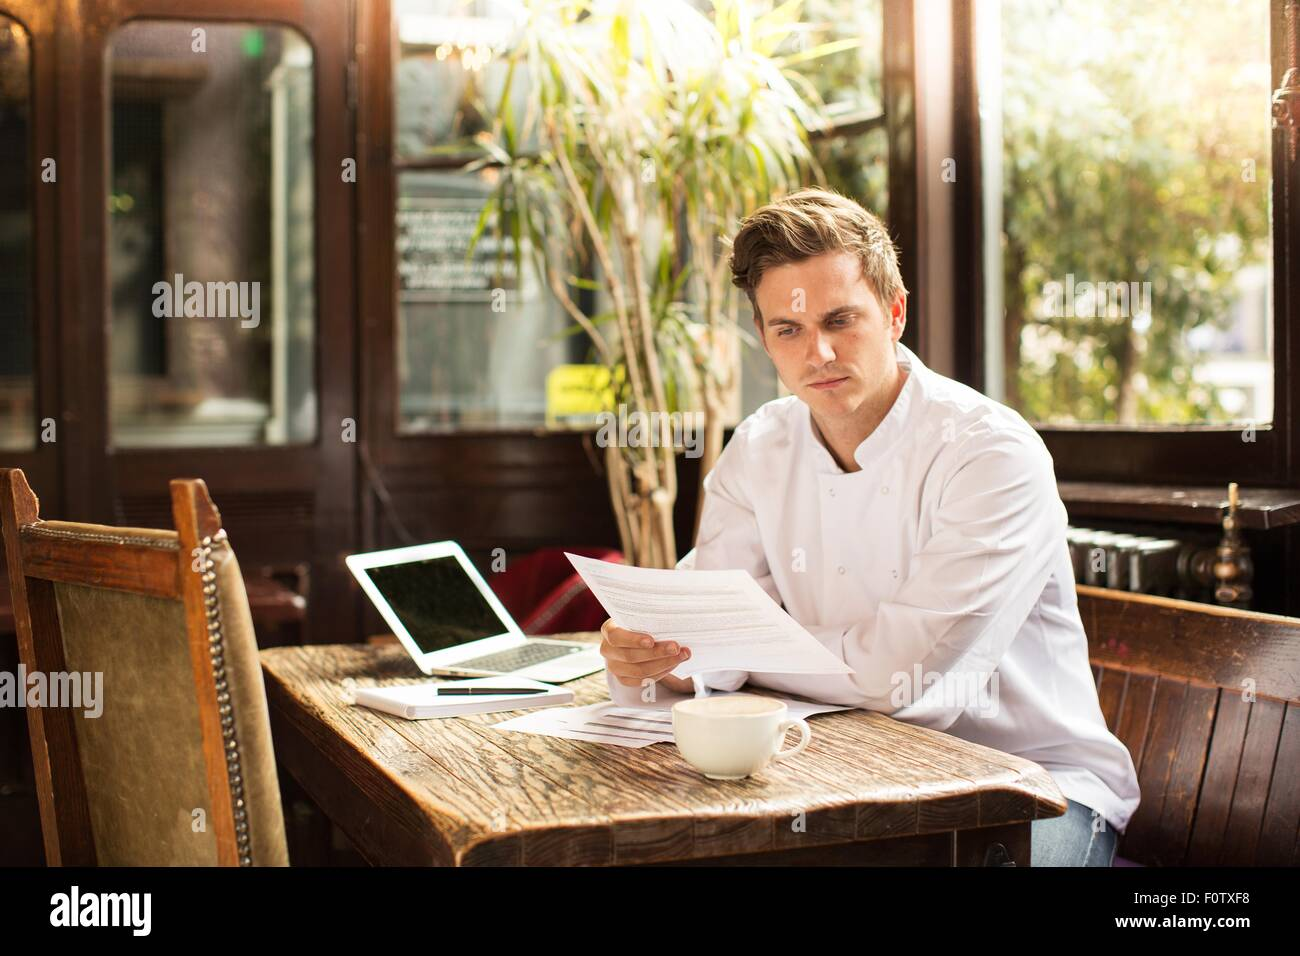 Young chef sitting at work looking at paperwork Stock Photo